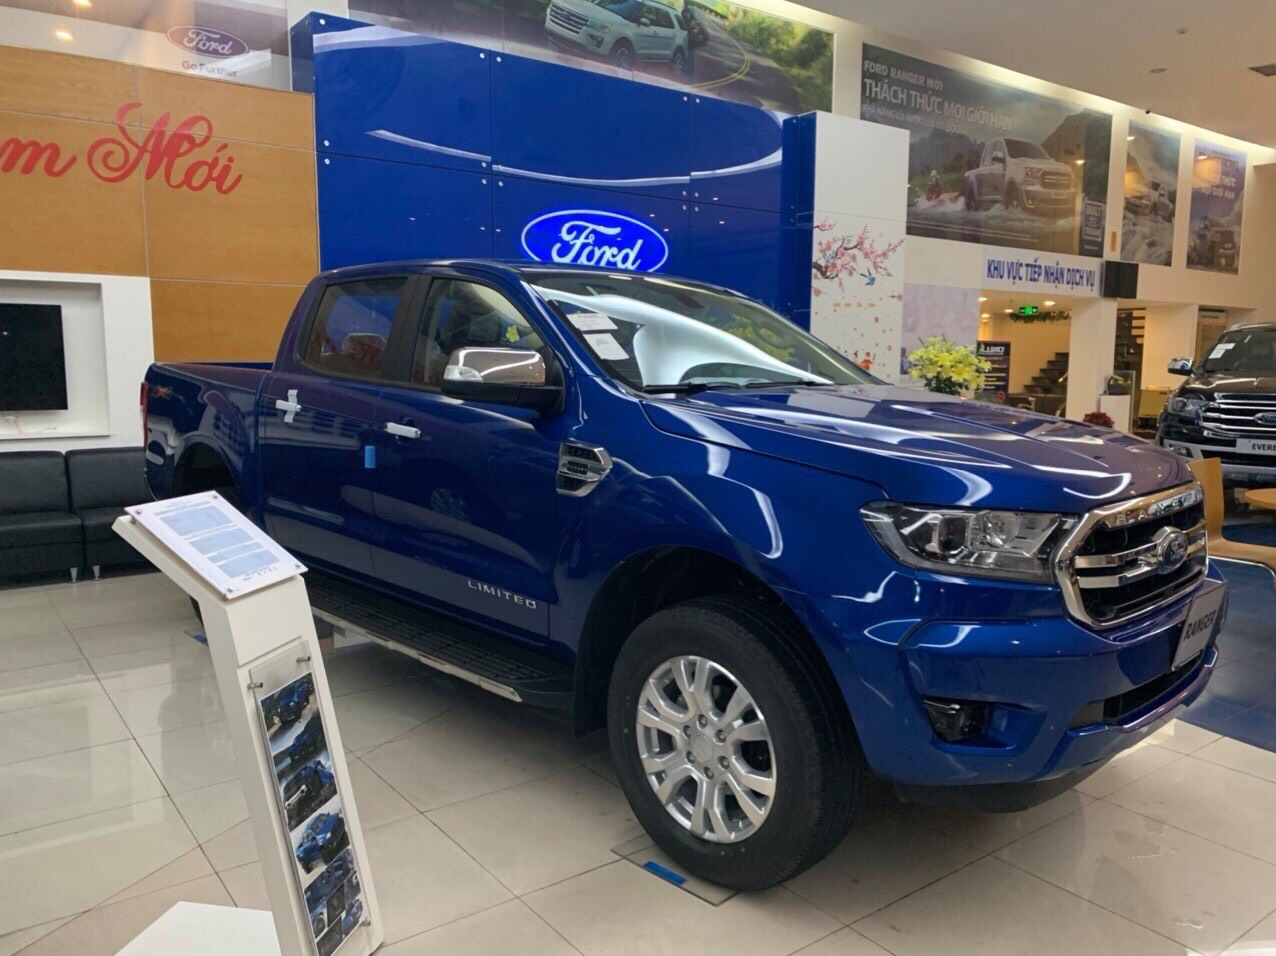 Ford Ranger XLT Limited 2.0L 4X4 AT2